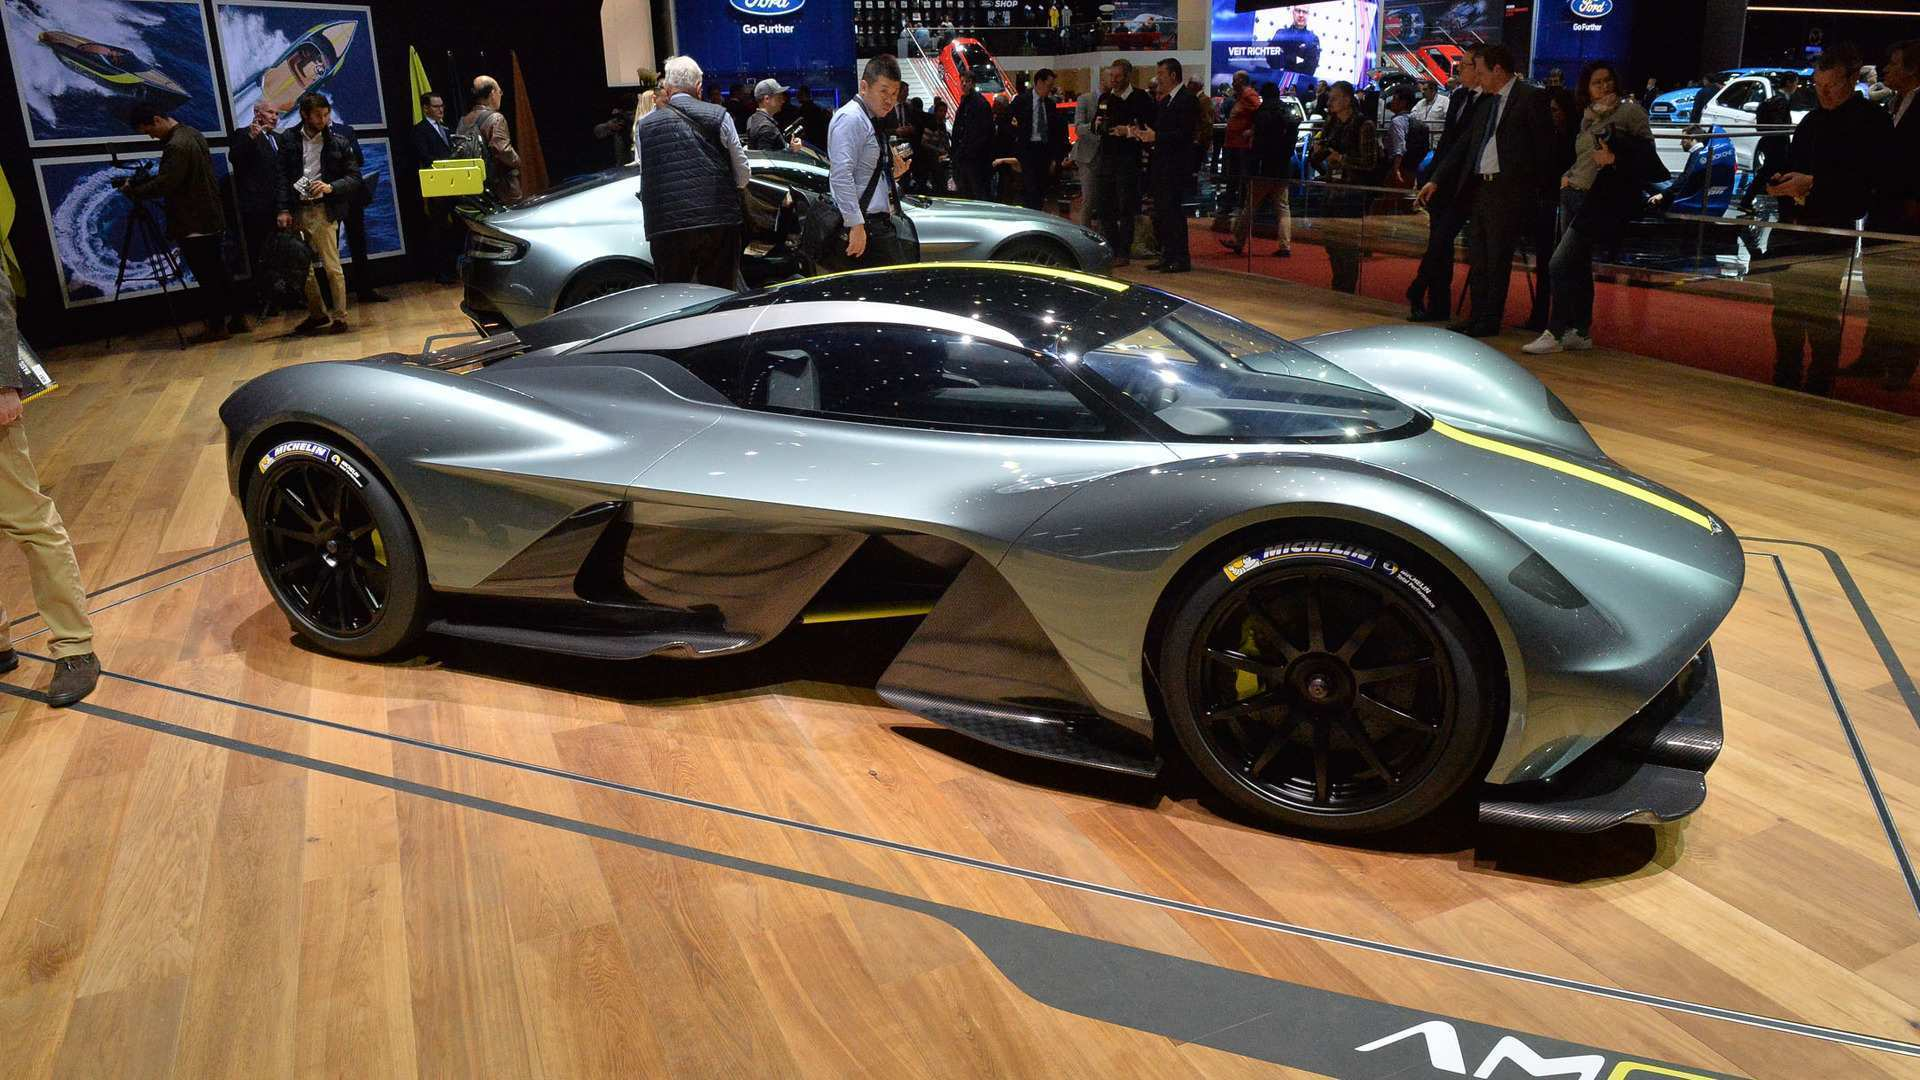 32 Gallery of 2019 Aston Martin Valkyrie Reviews for 2019 Aston Martin Valkyrie